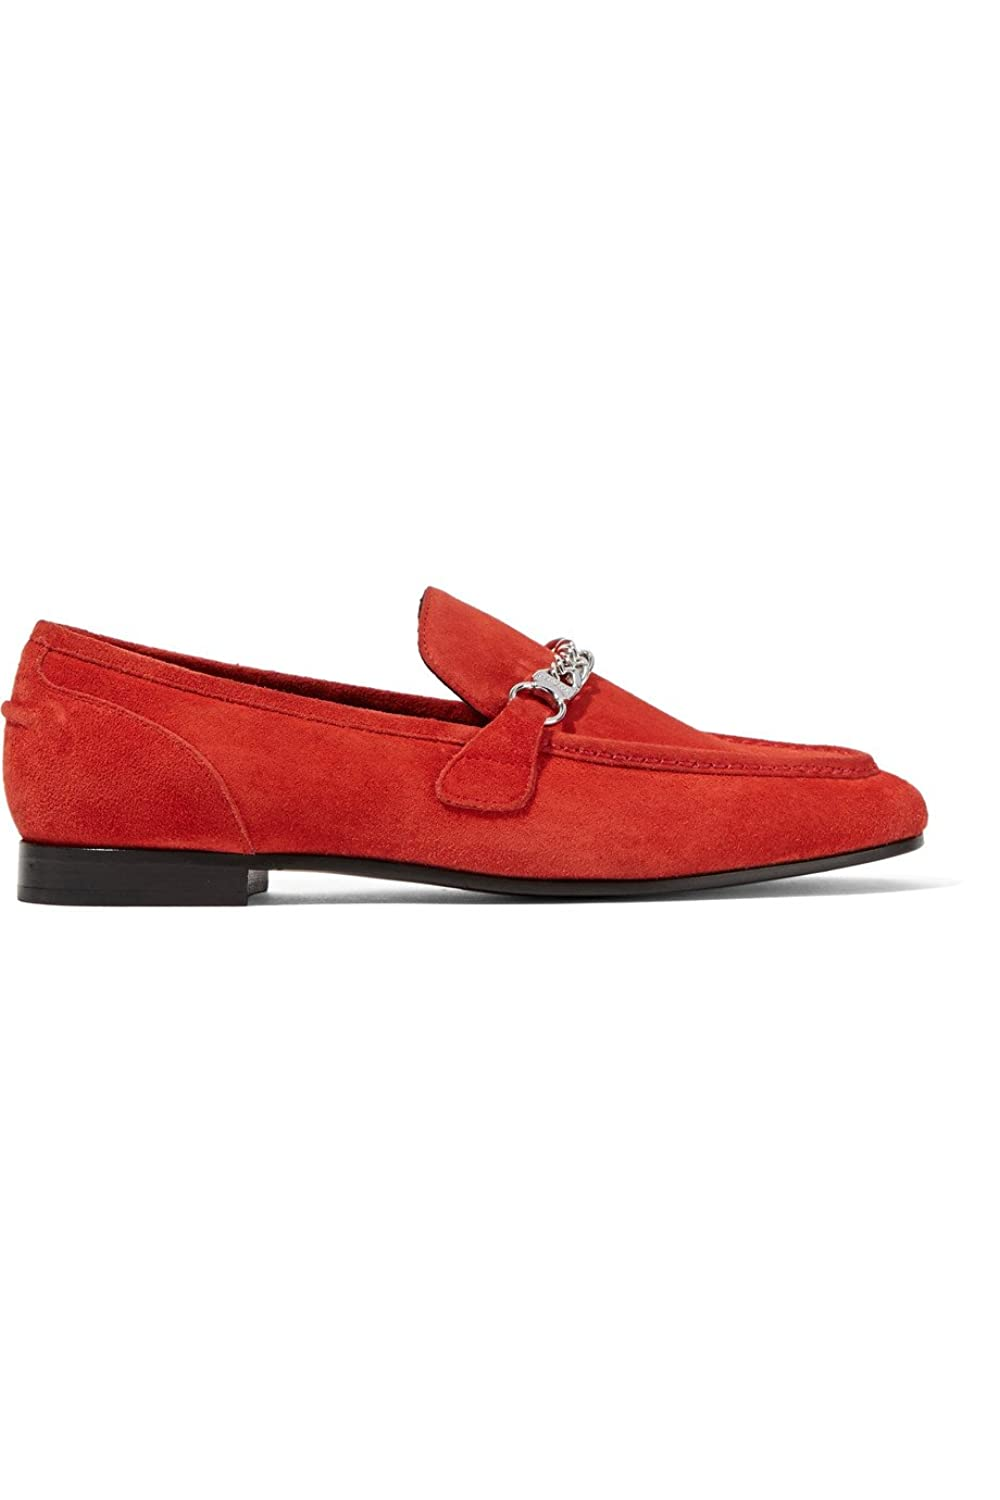 Cooper Red Suede Loafers